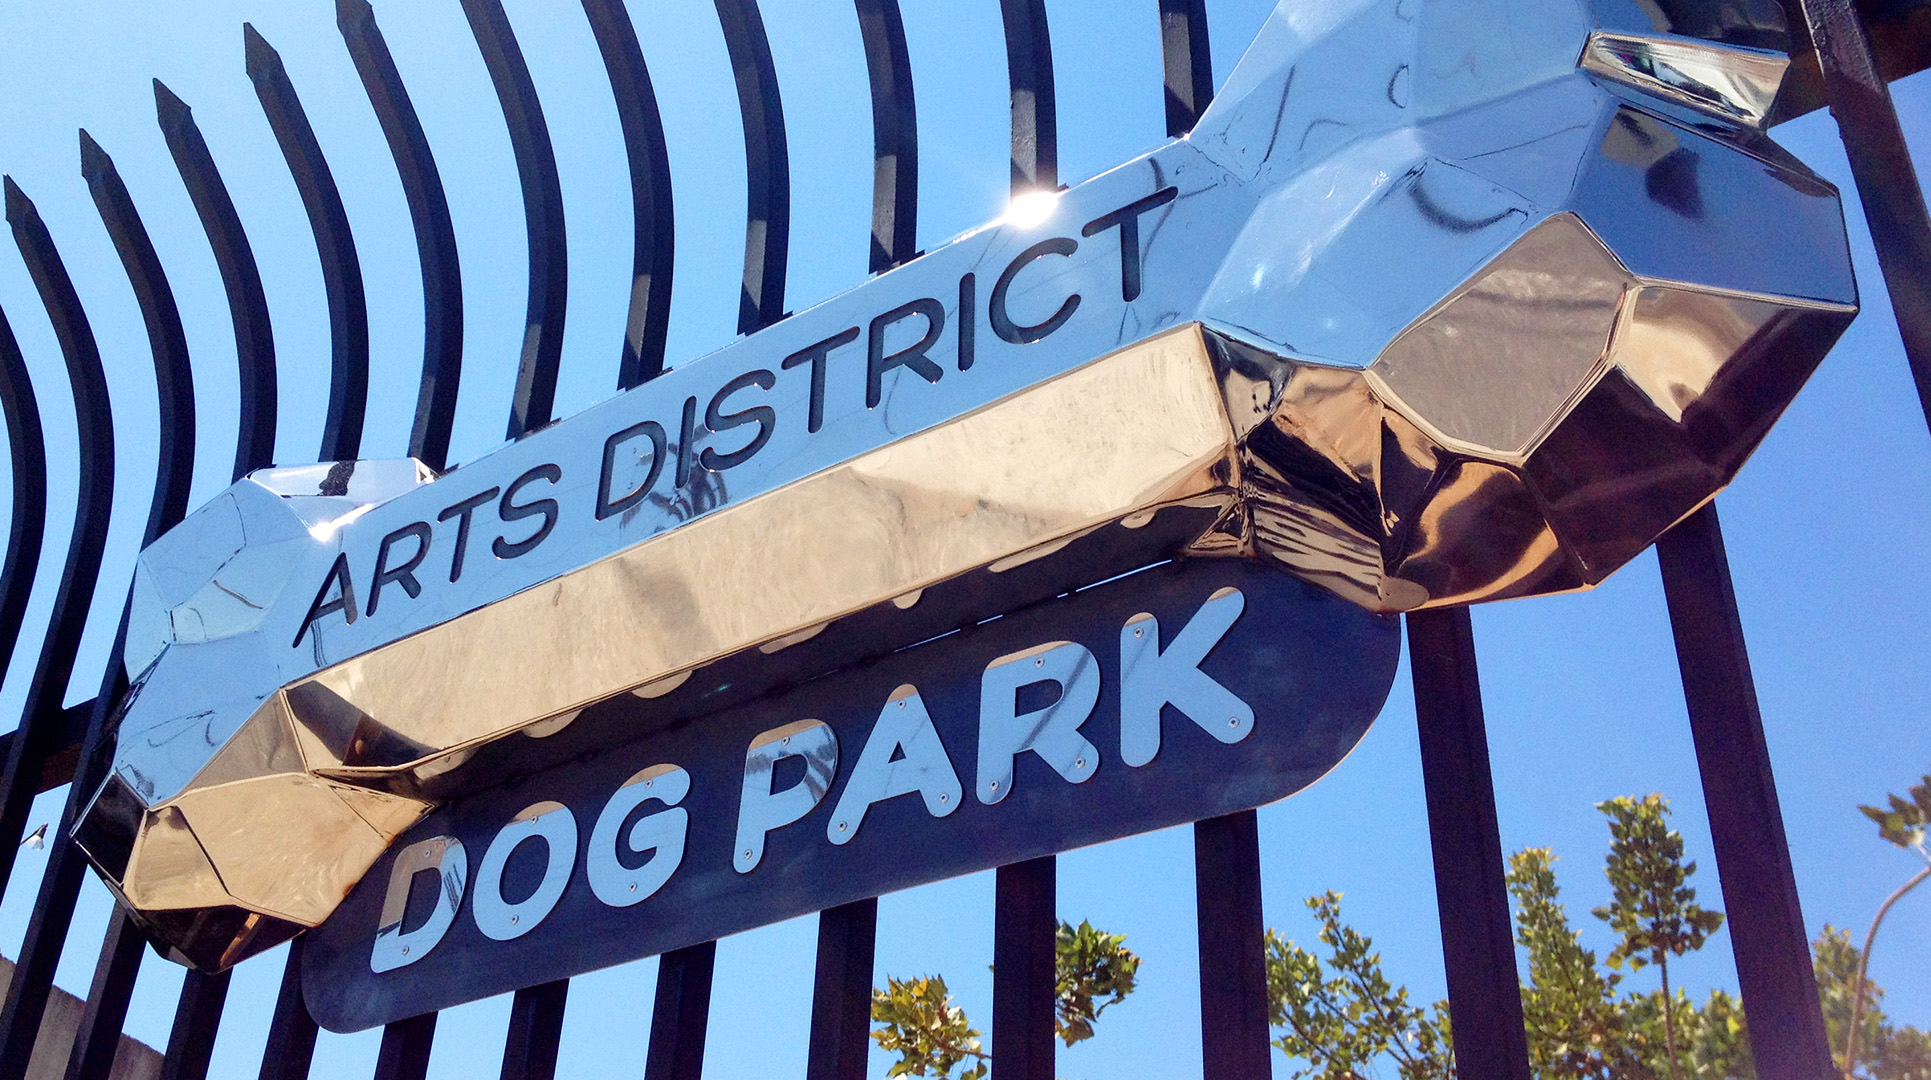 Arts District Dog Park